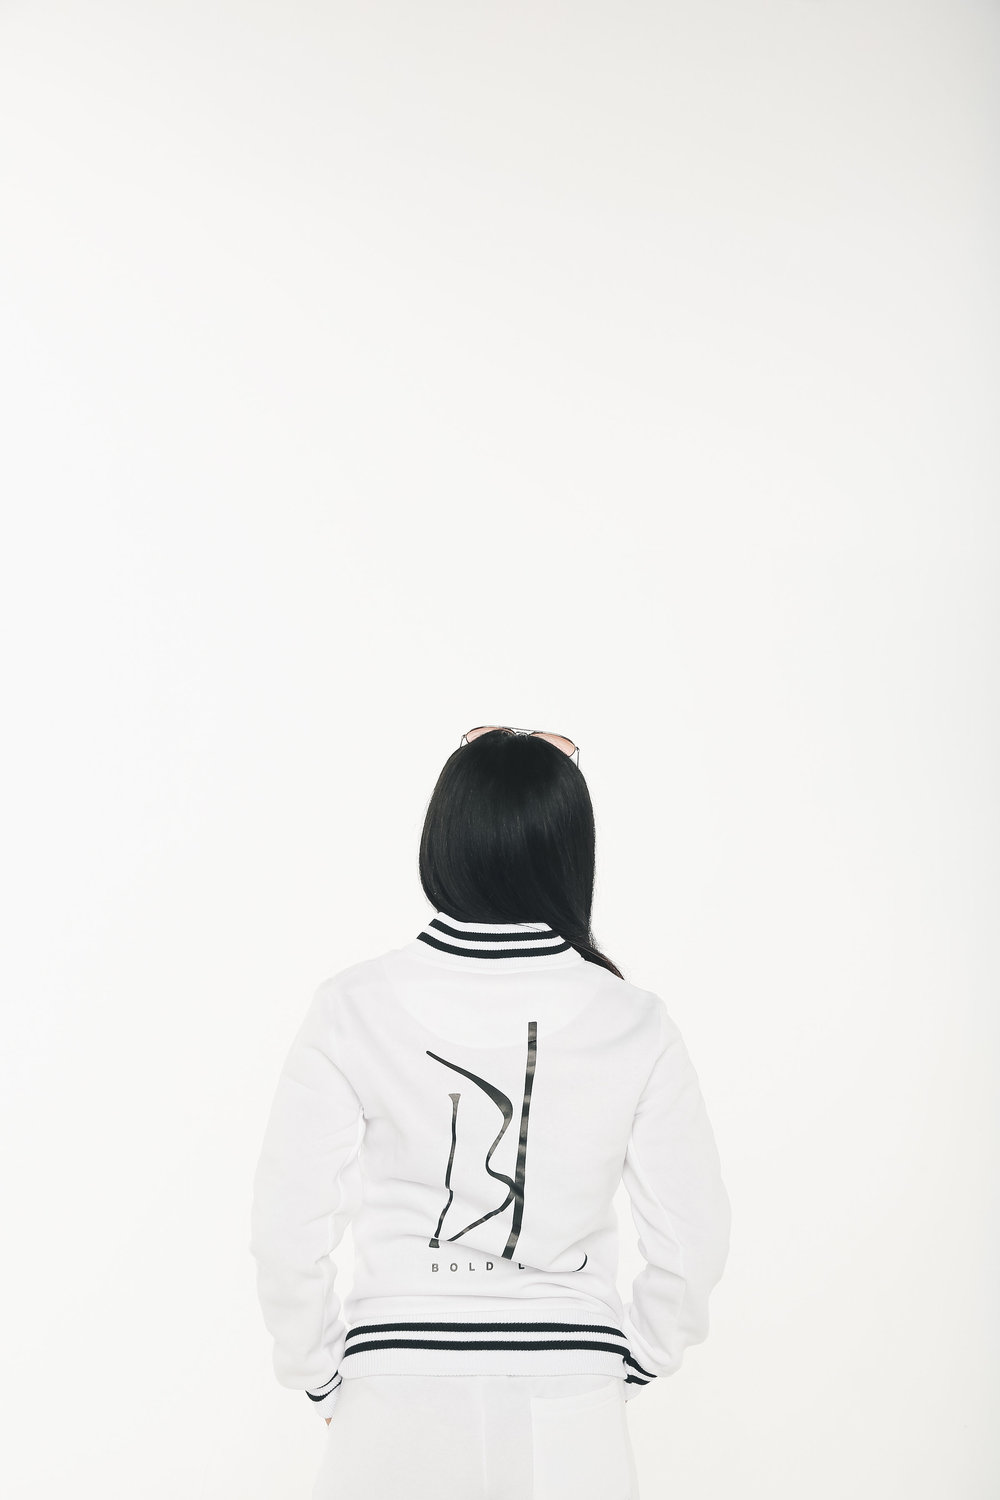 BL White Track Outfit Back .JPG